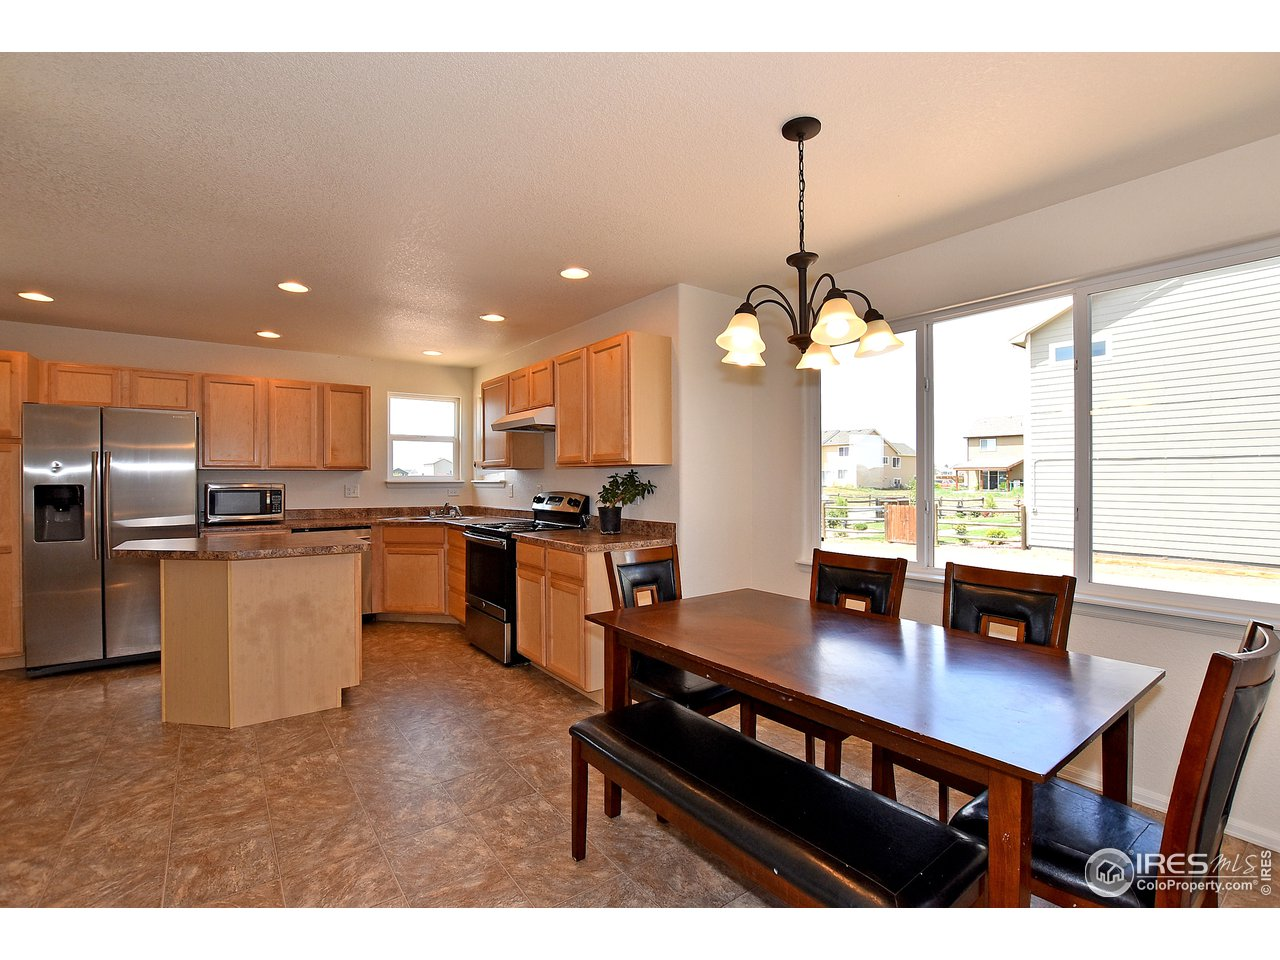 LARGE KITCHEN AND DINING AREA!